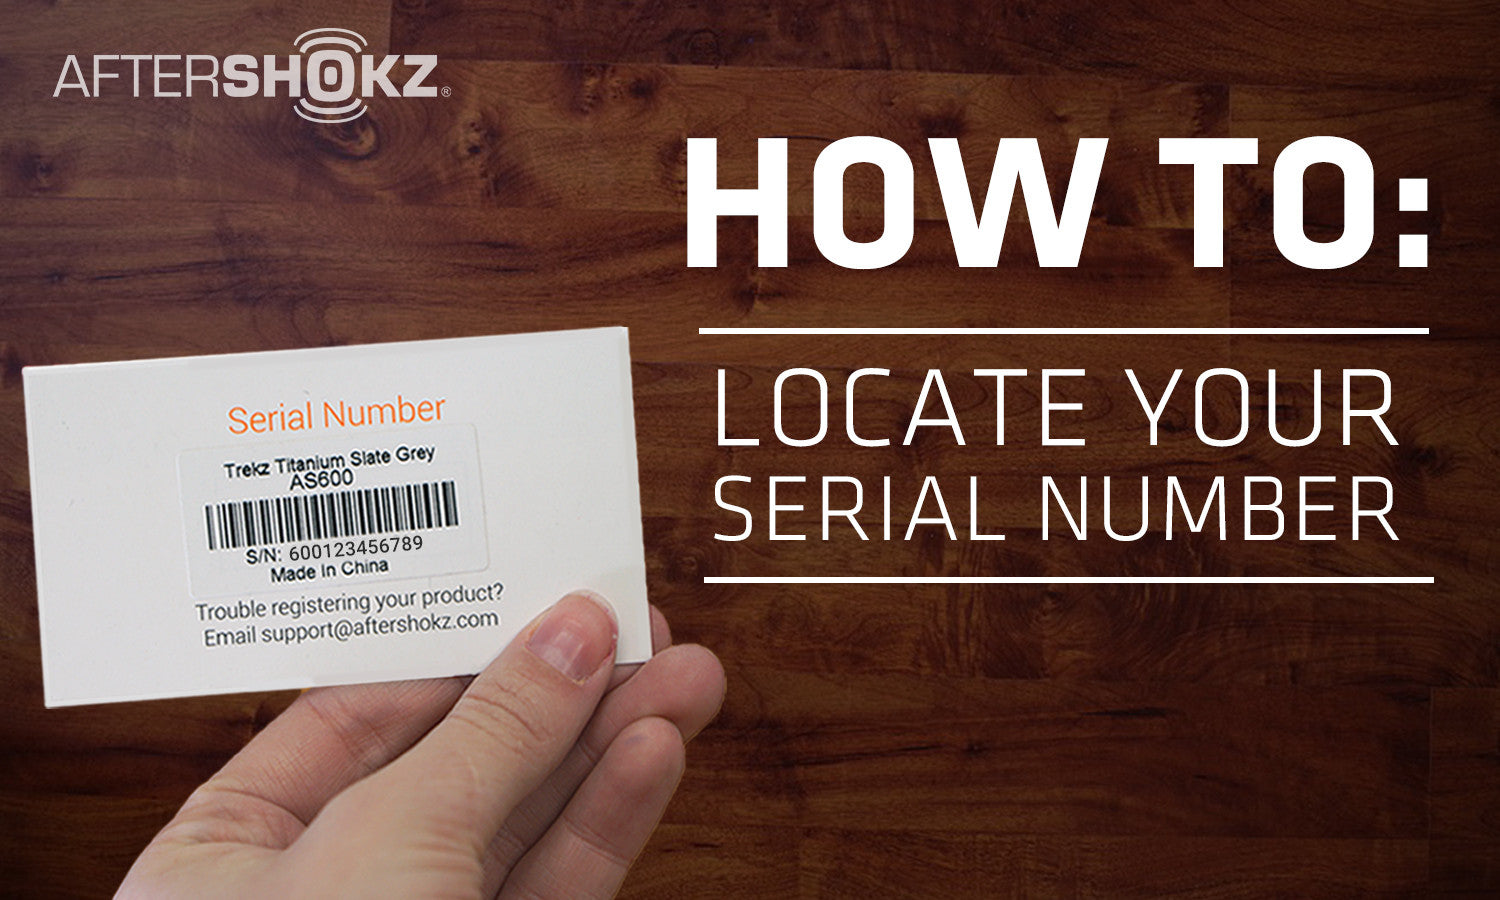 How To Locate Your Serial Number | AfterShokz